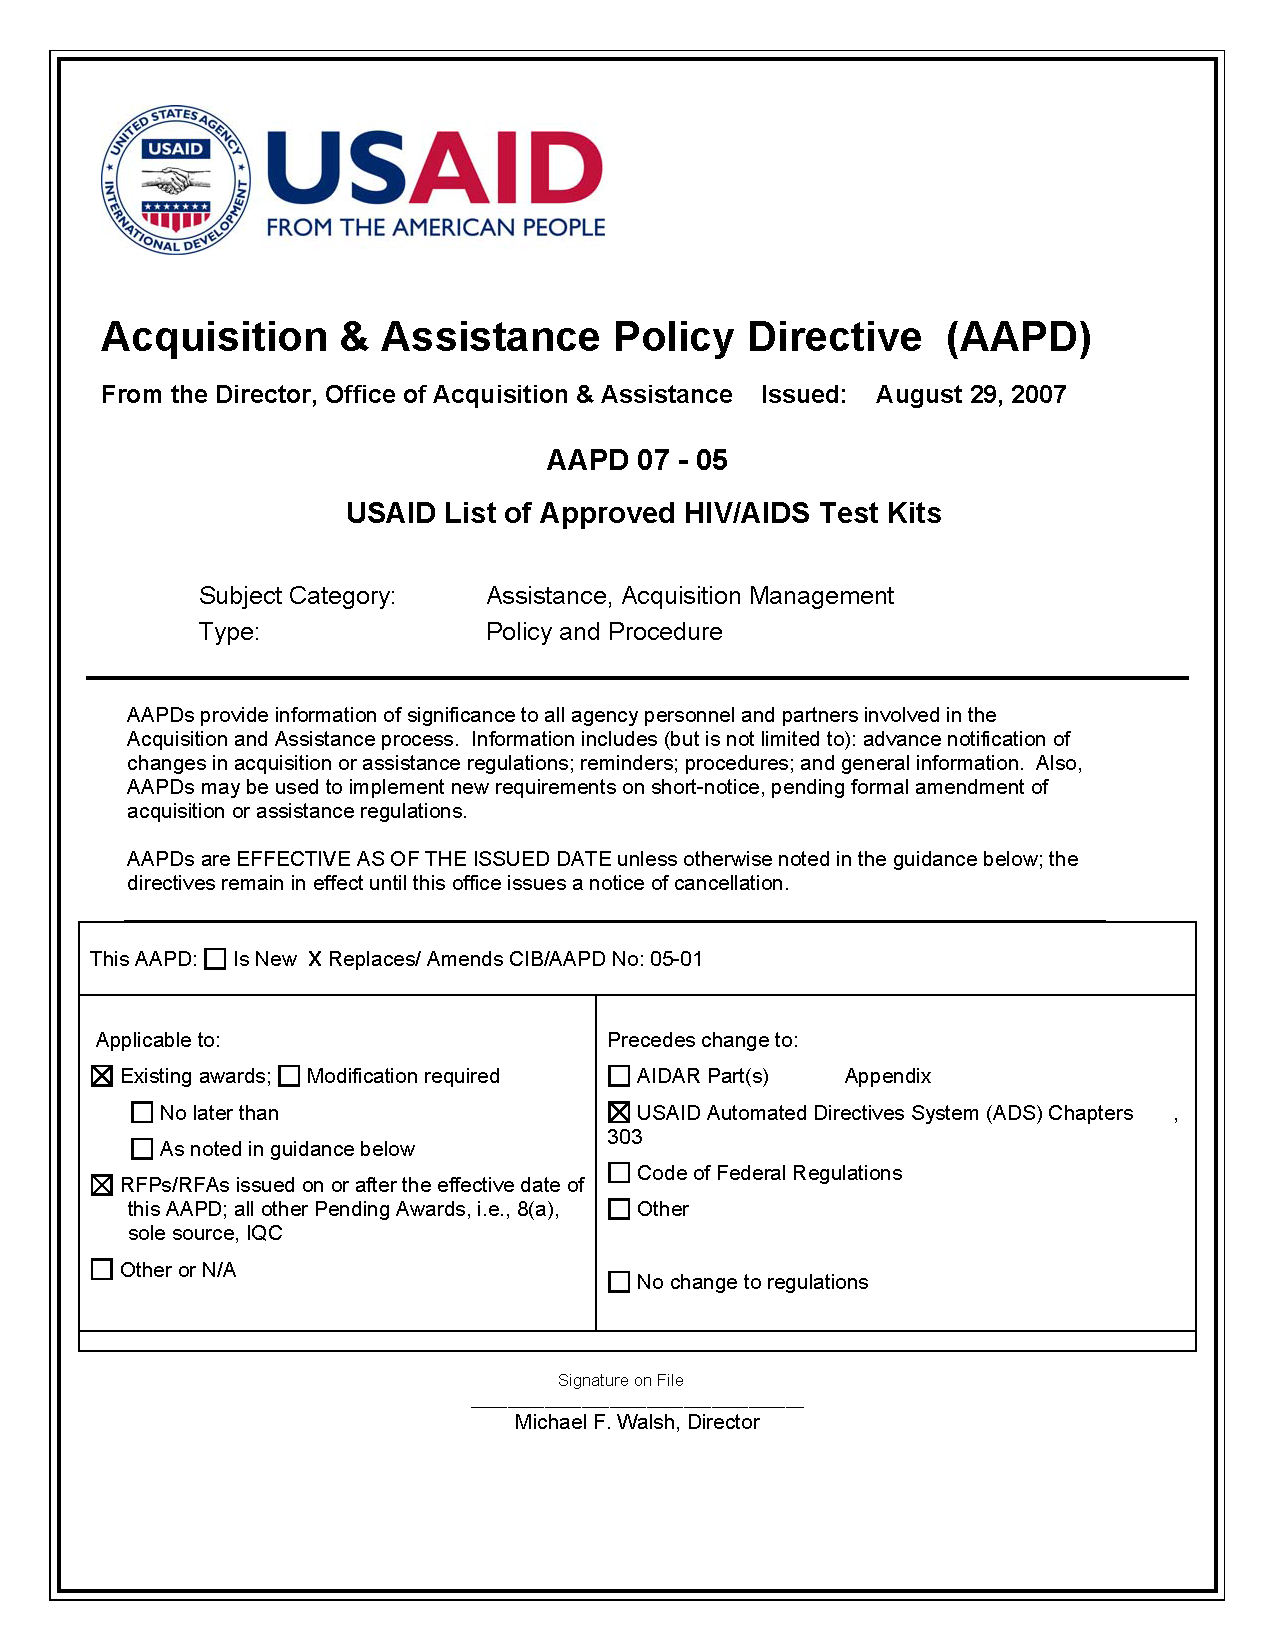 AAPD 07-05